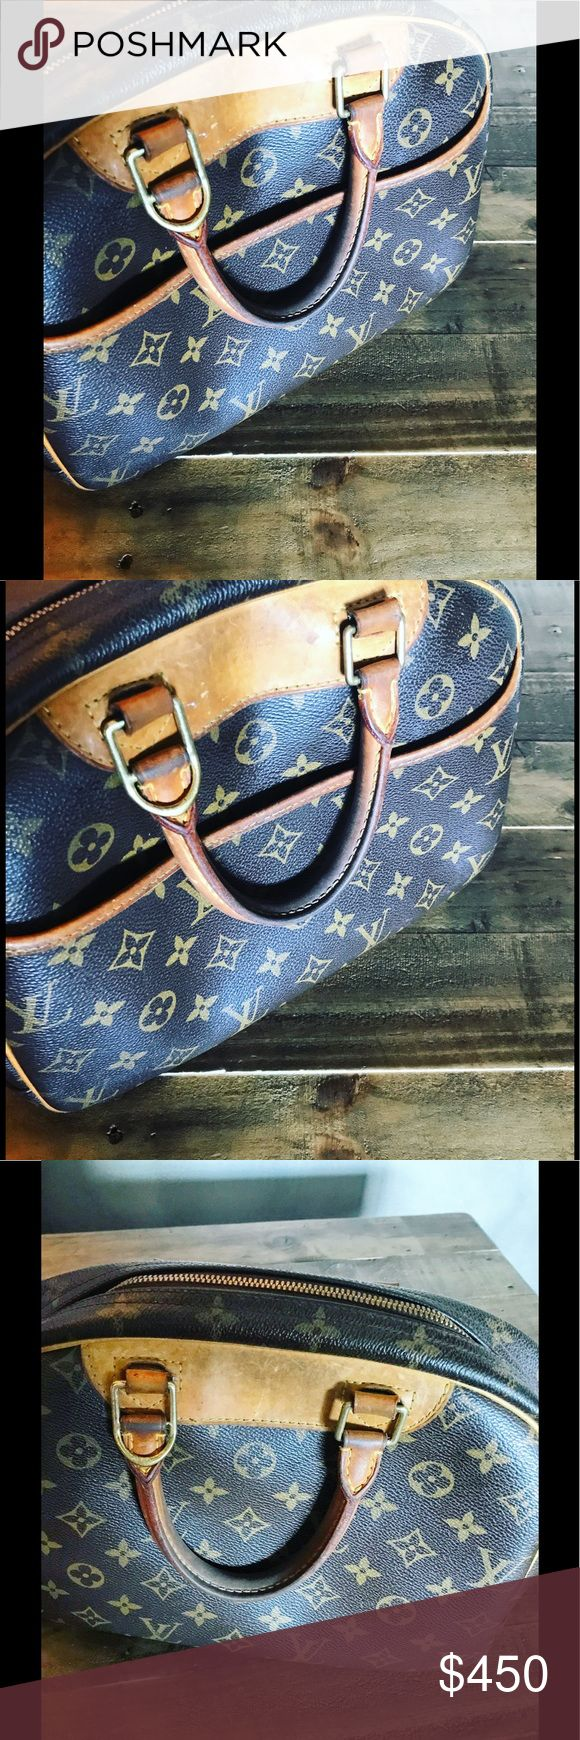 Authentic Louis Vuitton Speedy An vintage authentic Loui Vuitton Speedy. EUC , some wear and tear but still has a lot of life. No key to the locket. Some stains inside and a small tear on handle but hard to see. Leather handles show sign of use but can be early renewed.price reflects condition. Purchased at LV NYC. Louis Vuitton Bags Satchels